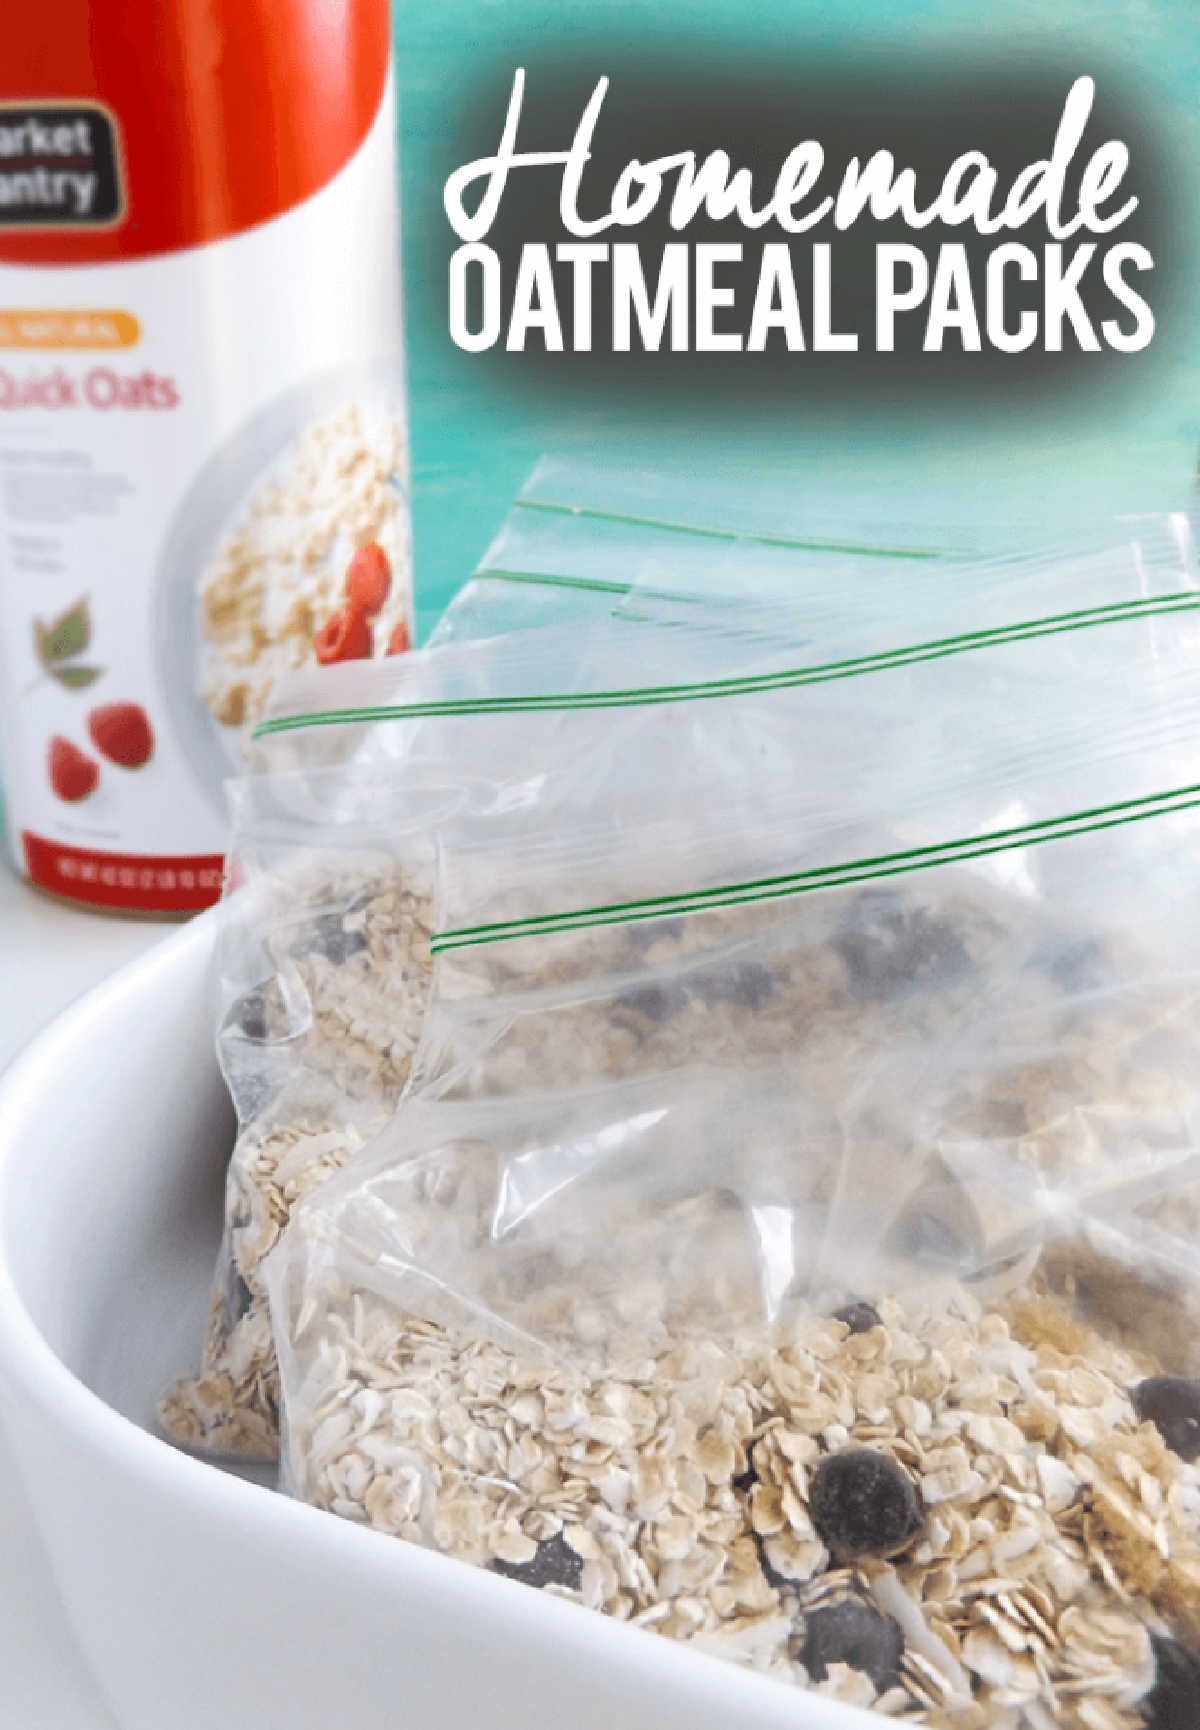 several baggies filled with oatmeal and chocolate chips in a serving dish.